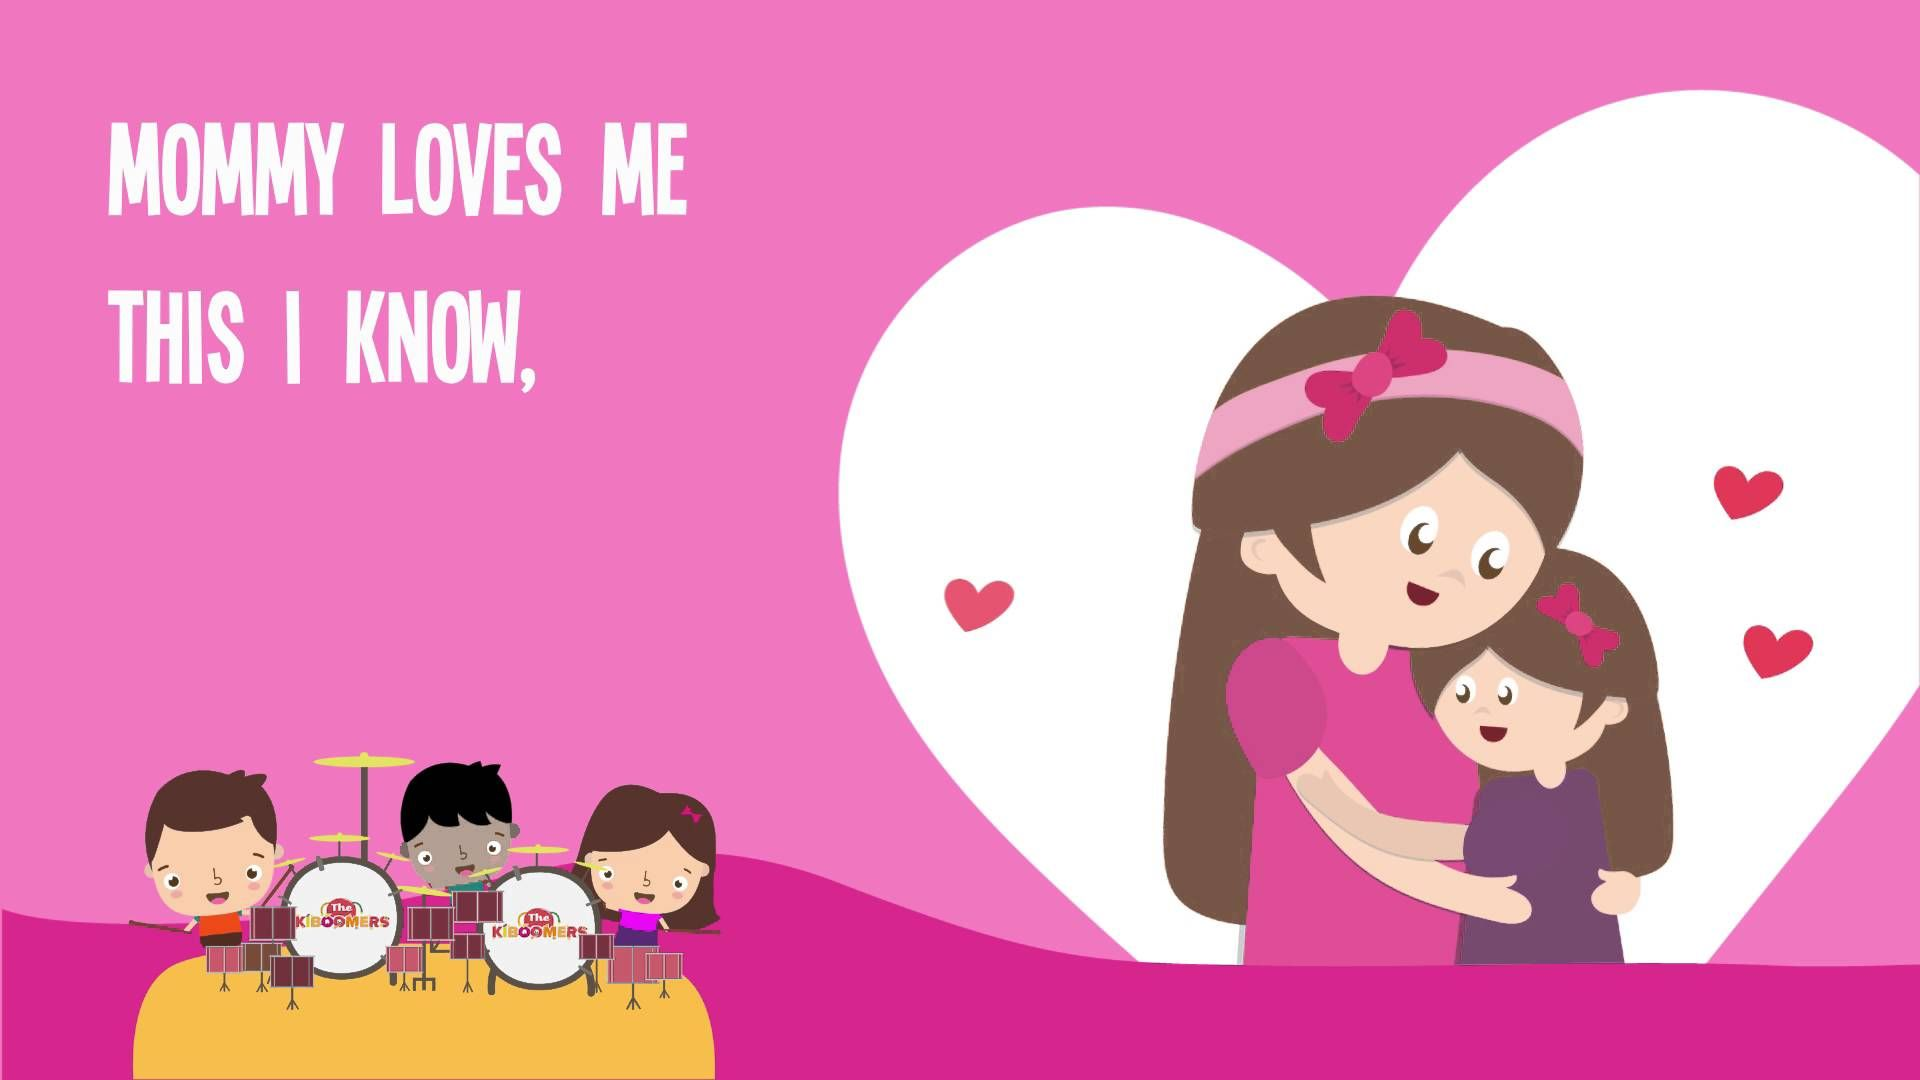 Mommy Loves Me Song For Children Mother S Day Song Lyrics For Kids Mothers Day Songs Happy Birthday Images Kids Songs